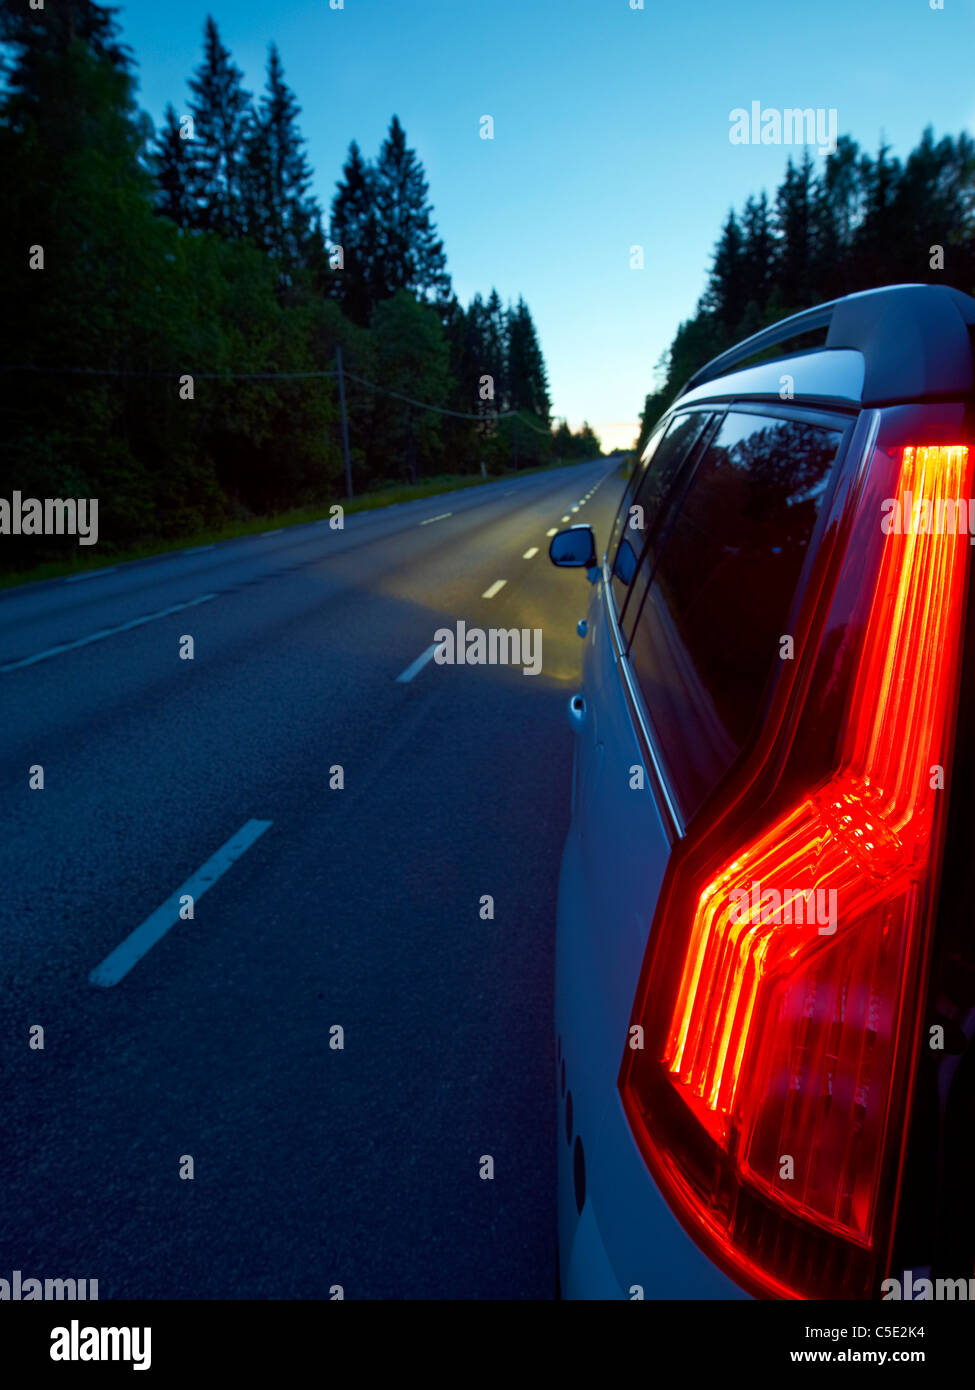 Close-up of tail lights on the country road along trees at dusk - Stock Image